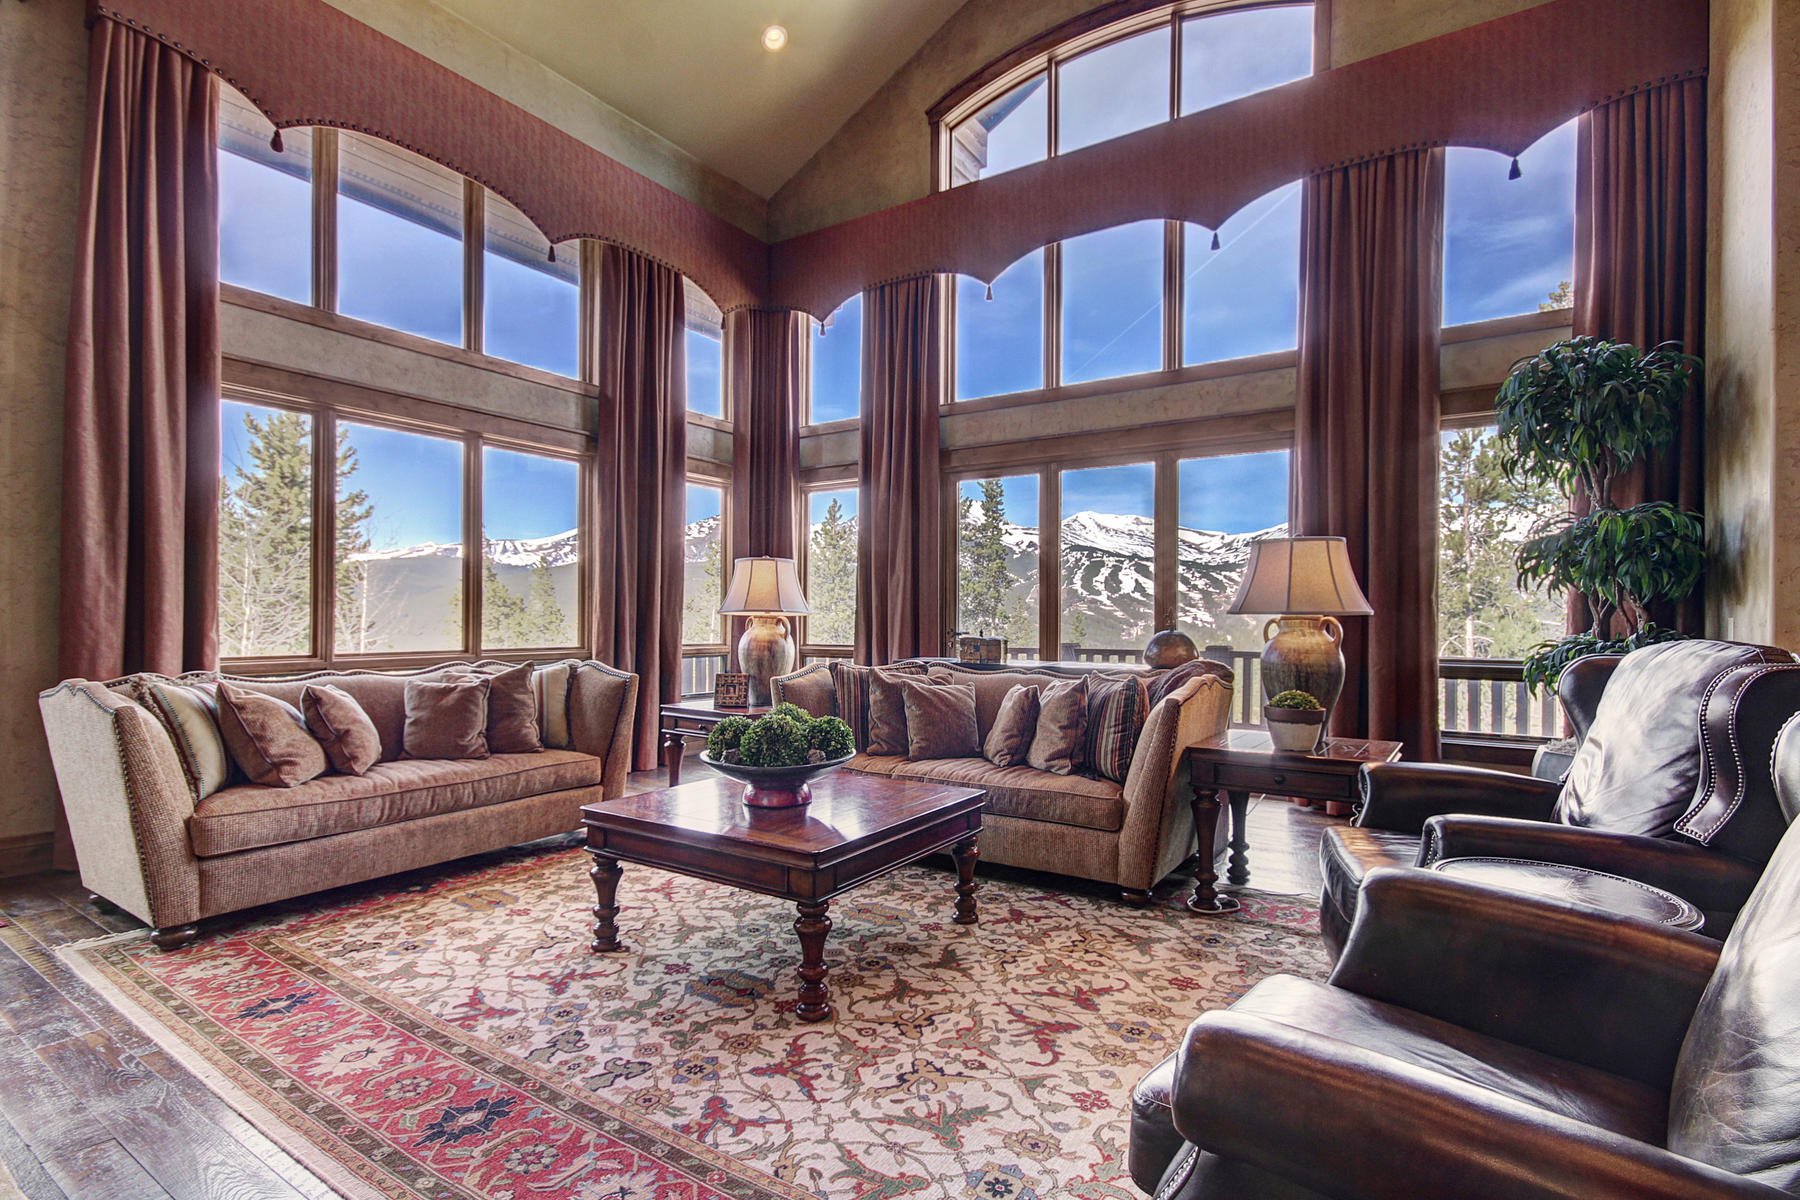 Single Family Home for Active at Picturesque Ski Area Views 86 Grey Jay Lane Breckenridge, Colorado 80424 United States